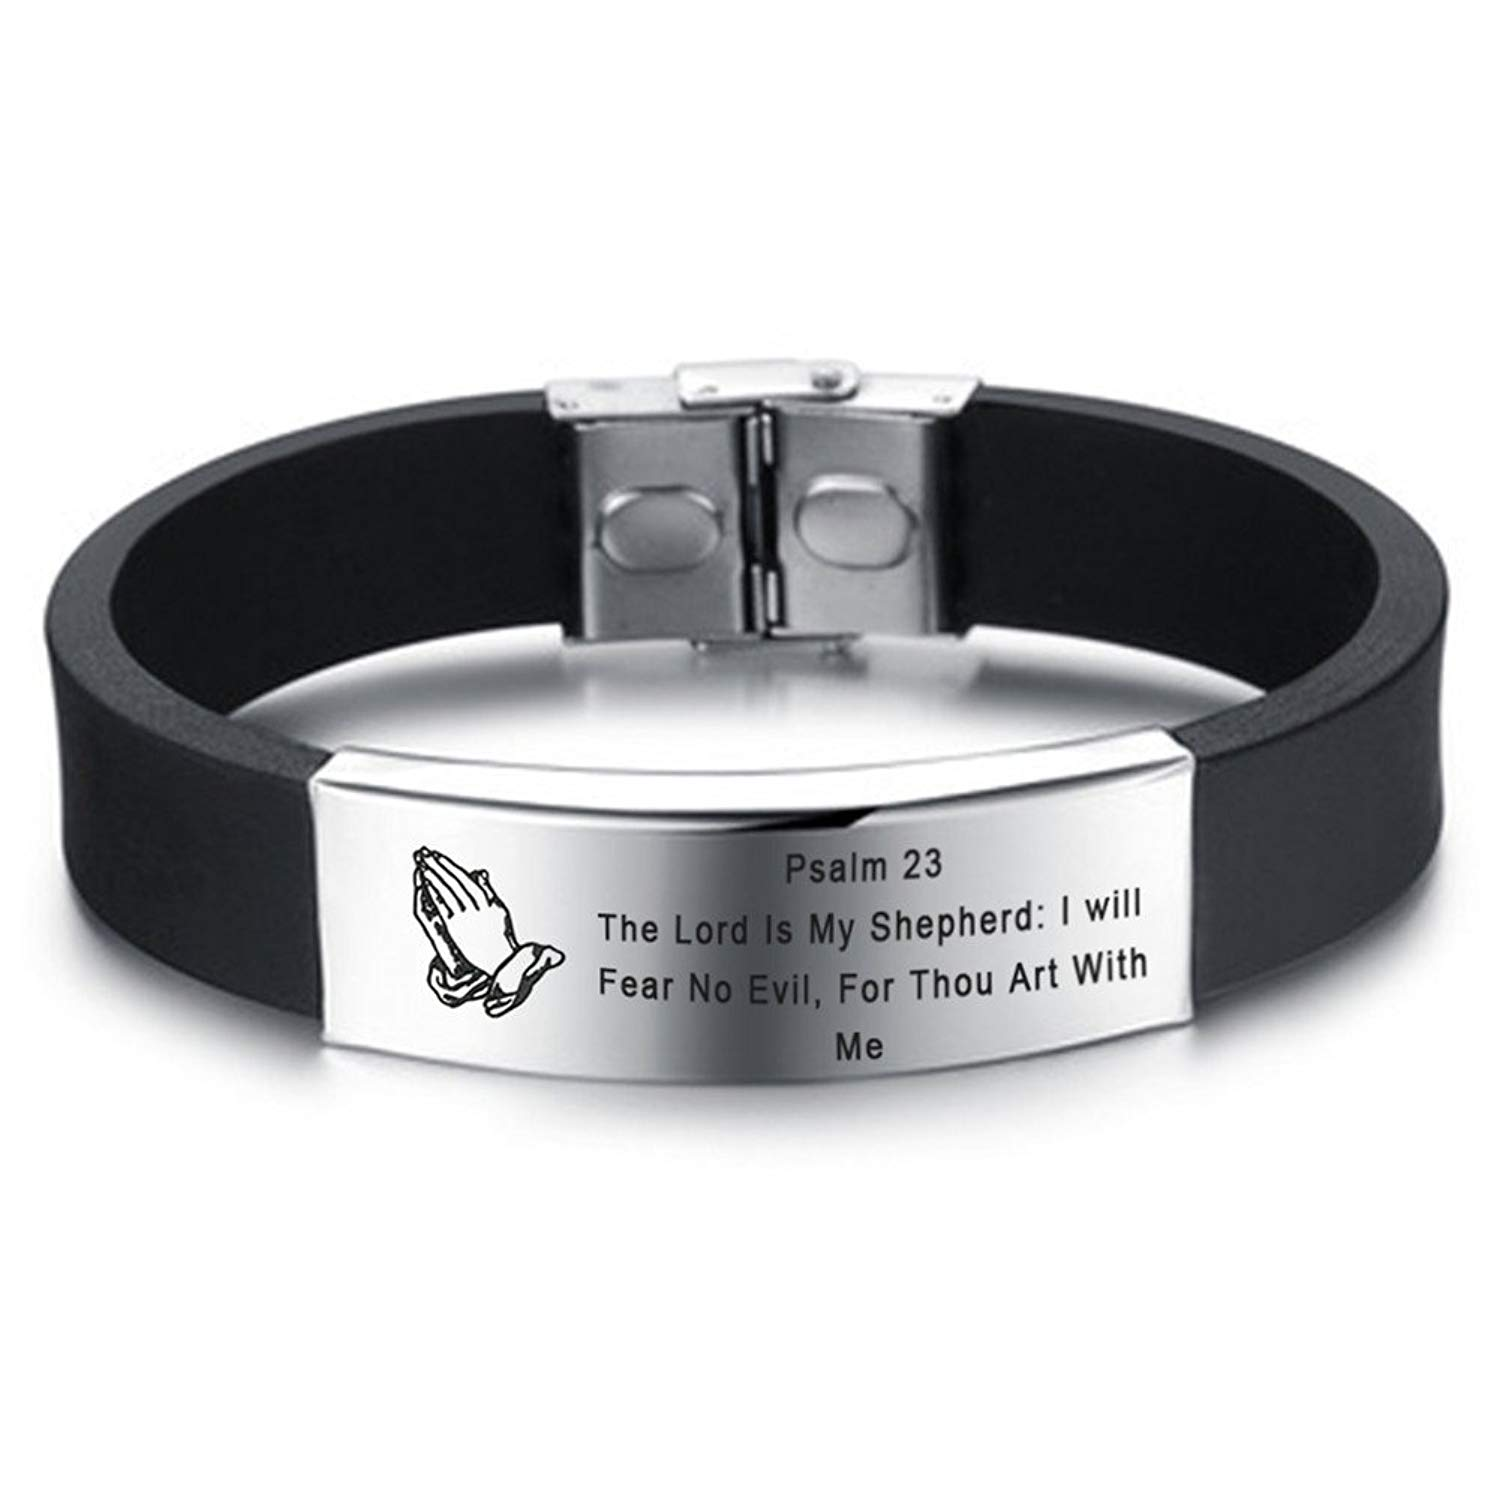 LF Mens Stainless Steel Silicone Praying Hands Serenity Prayer Bible Verse Bracelet Rubber Scripture Quote Wristband Christian Jewelry for Boyfriend Husband Son Dad for Birthday Baptism Gift